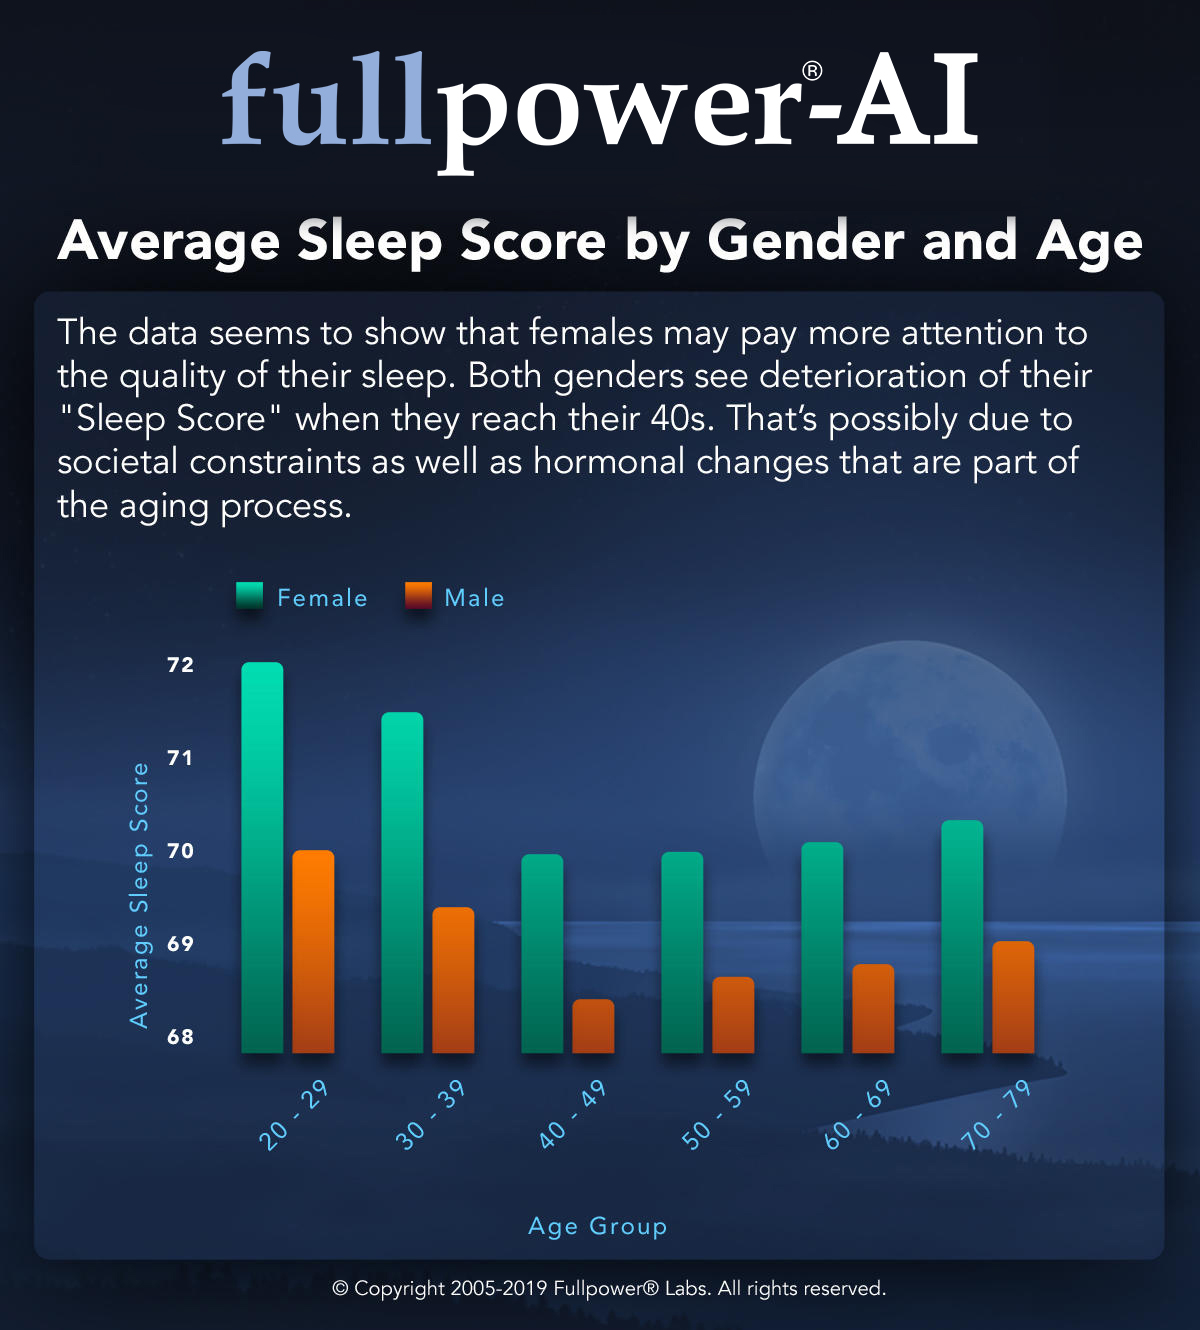 average-sleep-score-by-gender-and-age